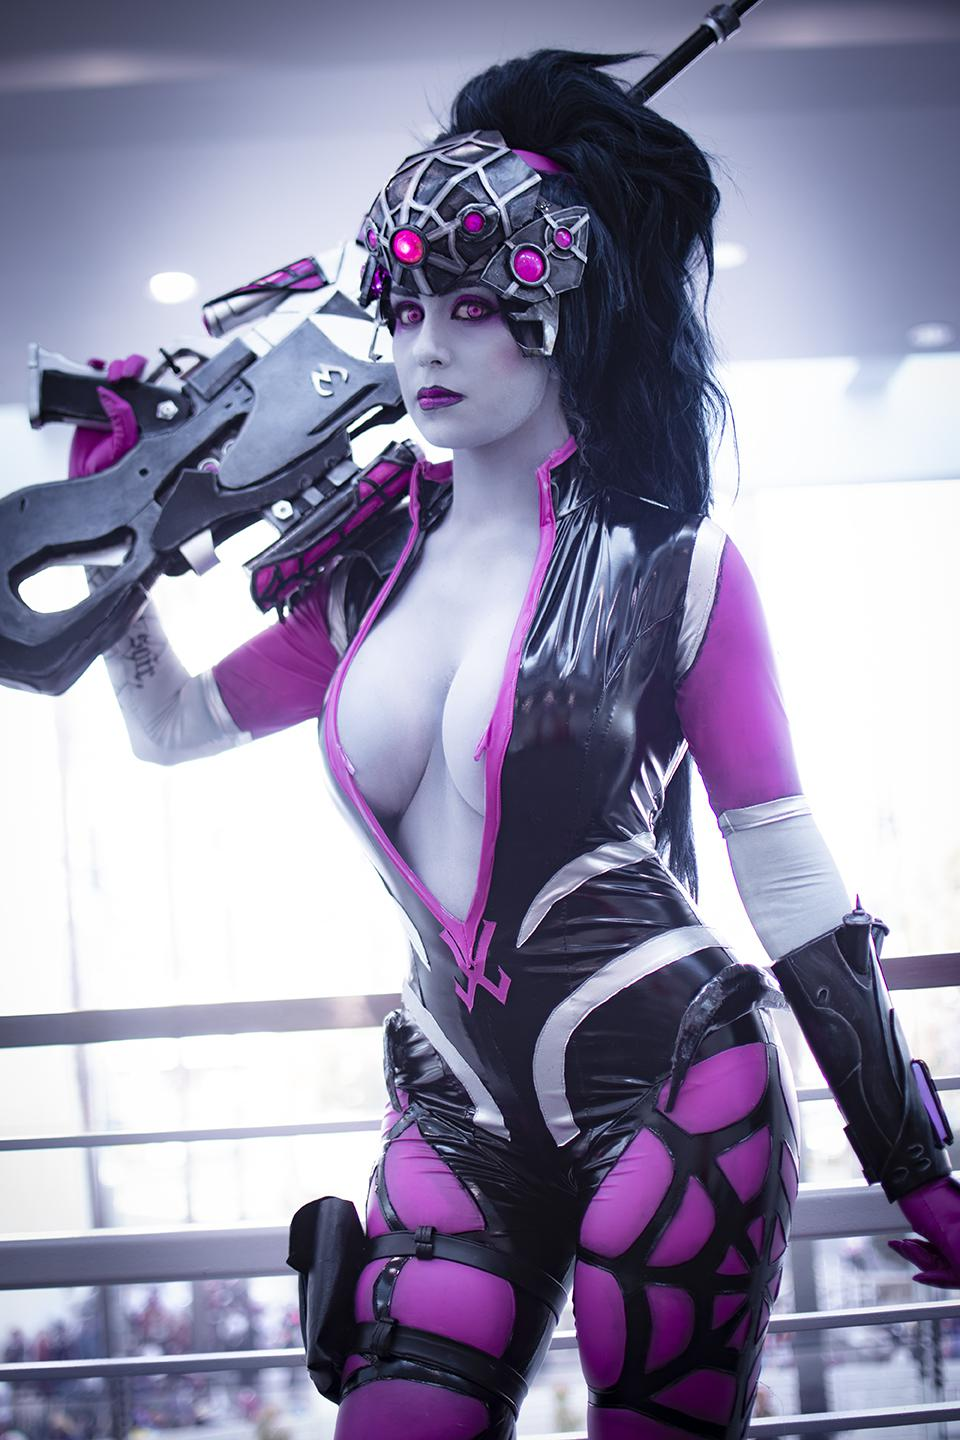 Khainsaw As Widowmaker